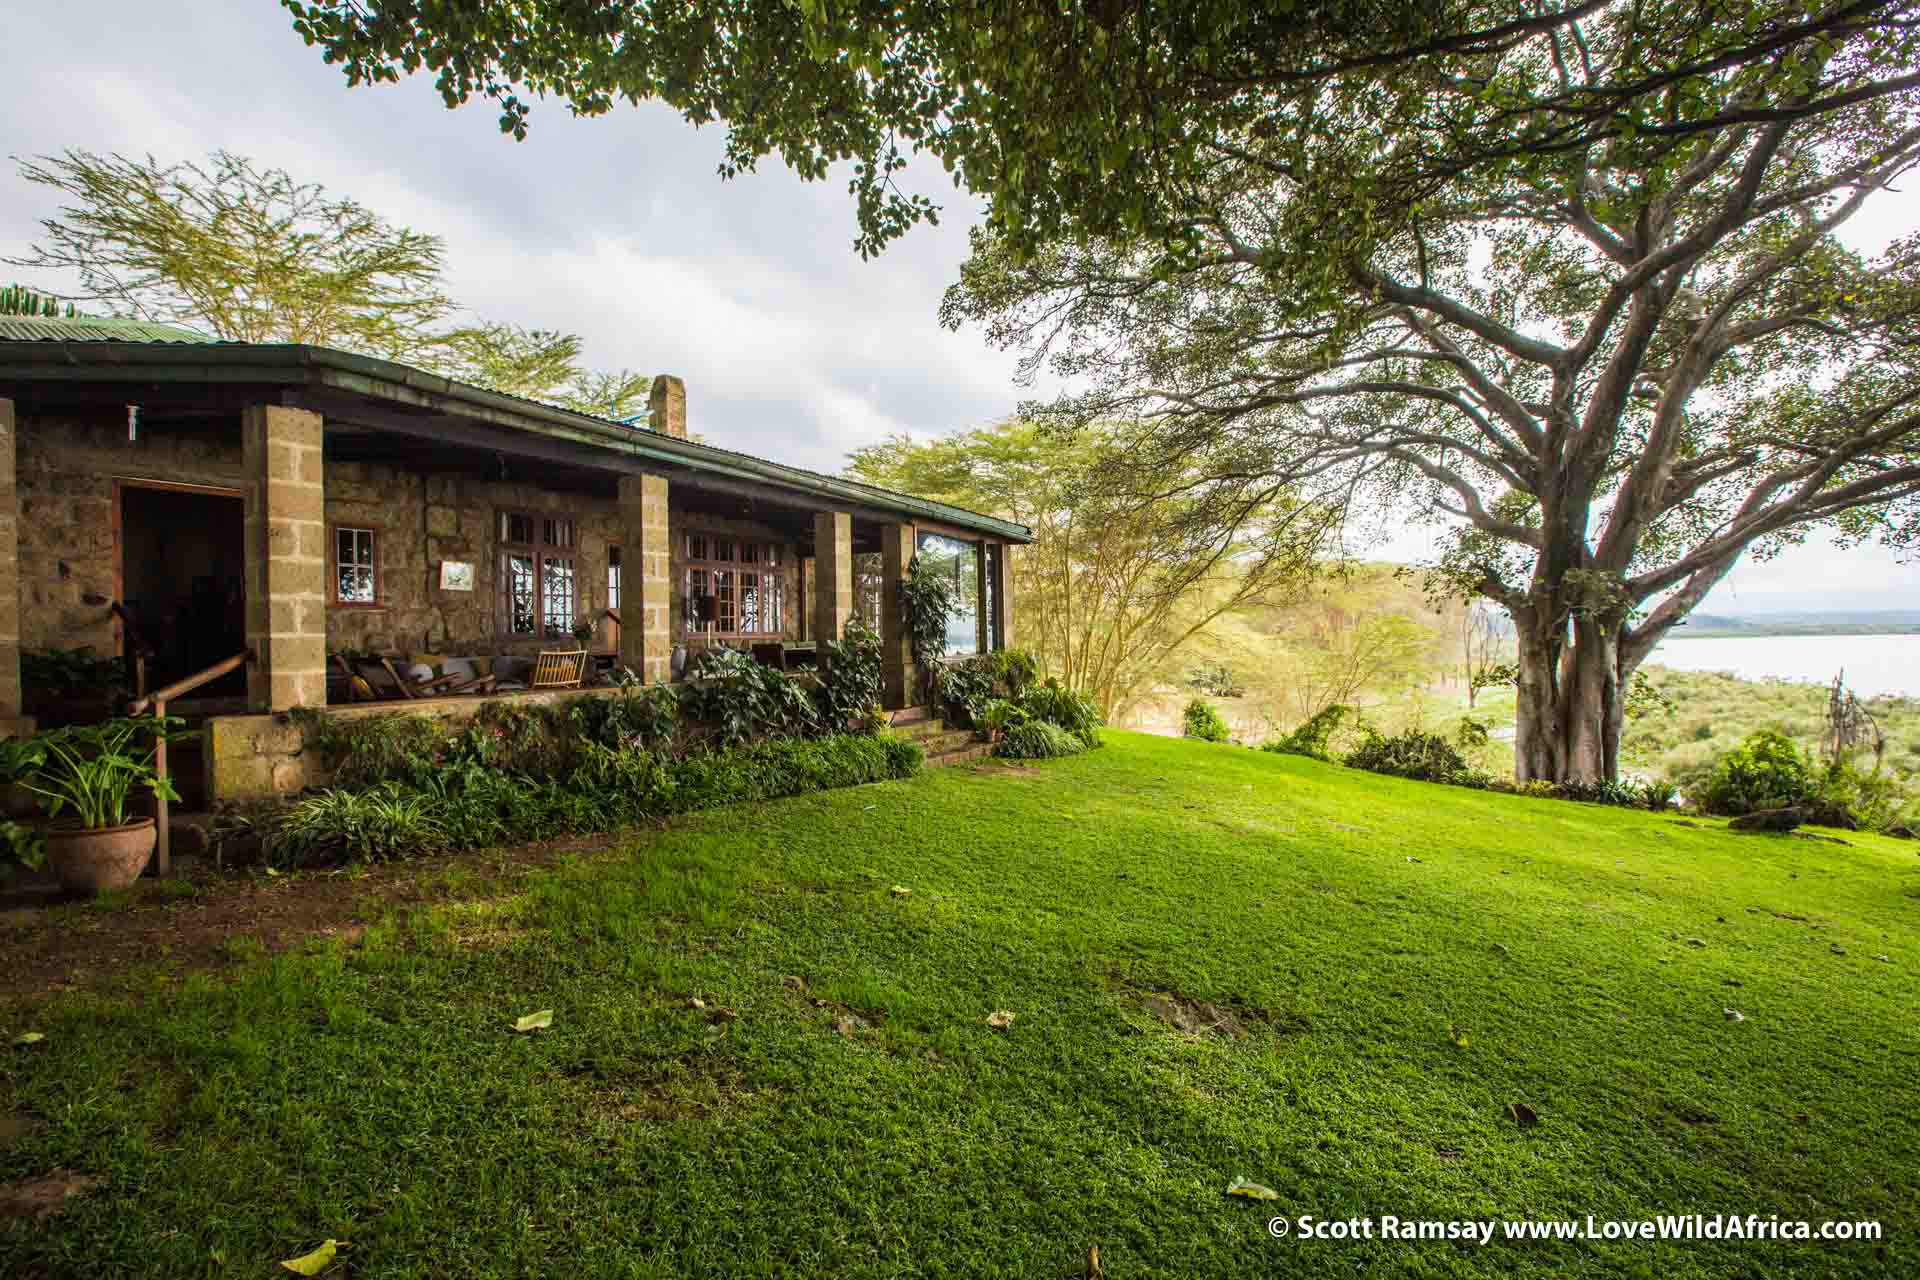 Ajabu House on shores of Lake Naivasha, where our helicopter safari ended. This is the Kenya that most people know...green, well-watered, comfortable and generally lovely to be in. The contrasts between the south of the country and the north are extreme.